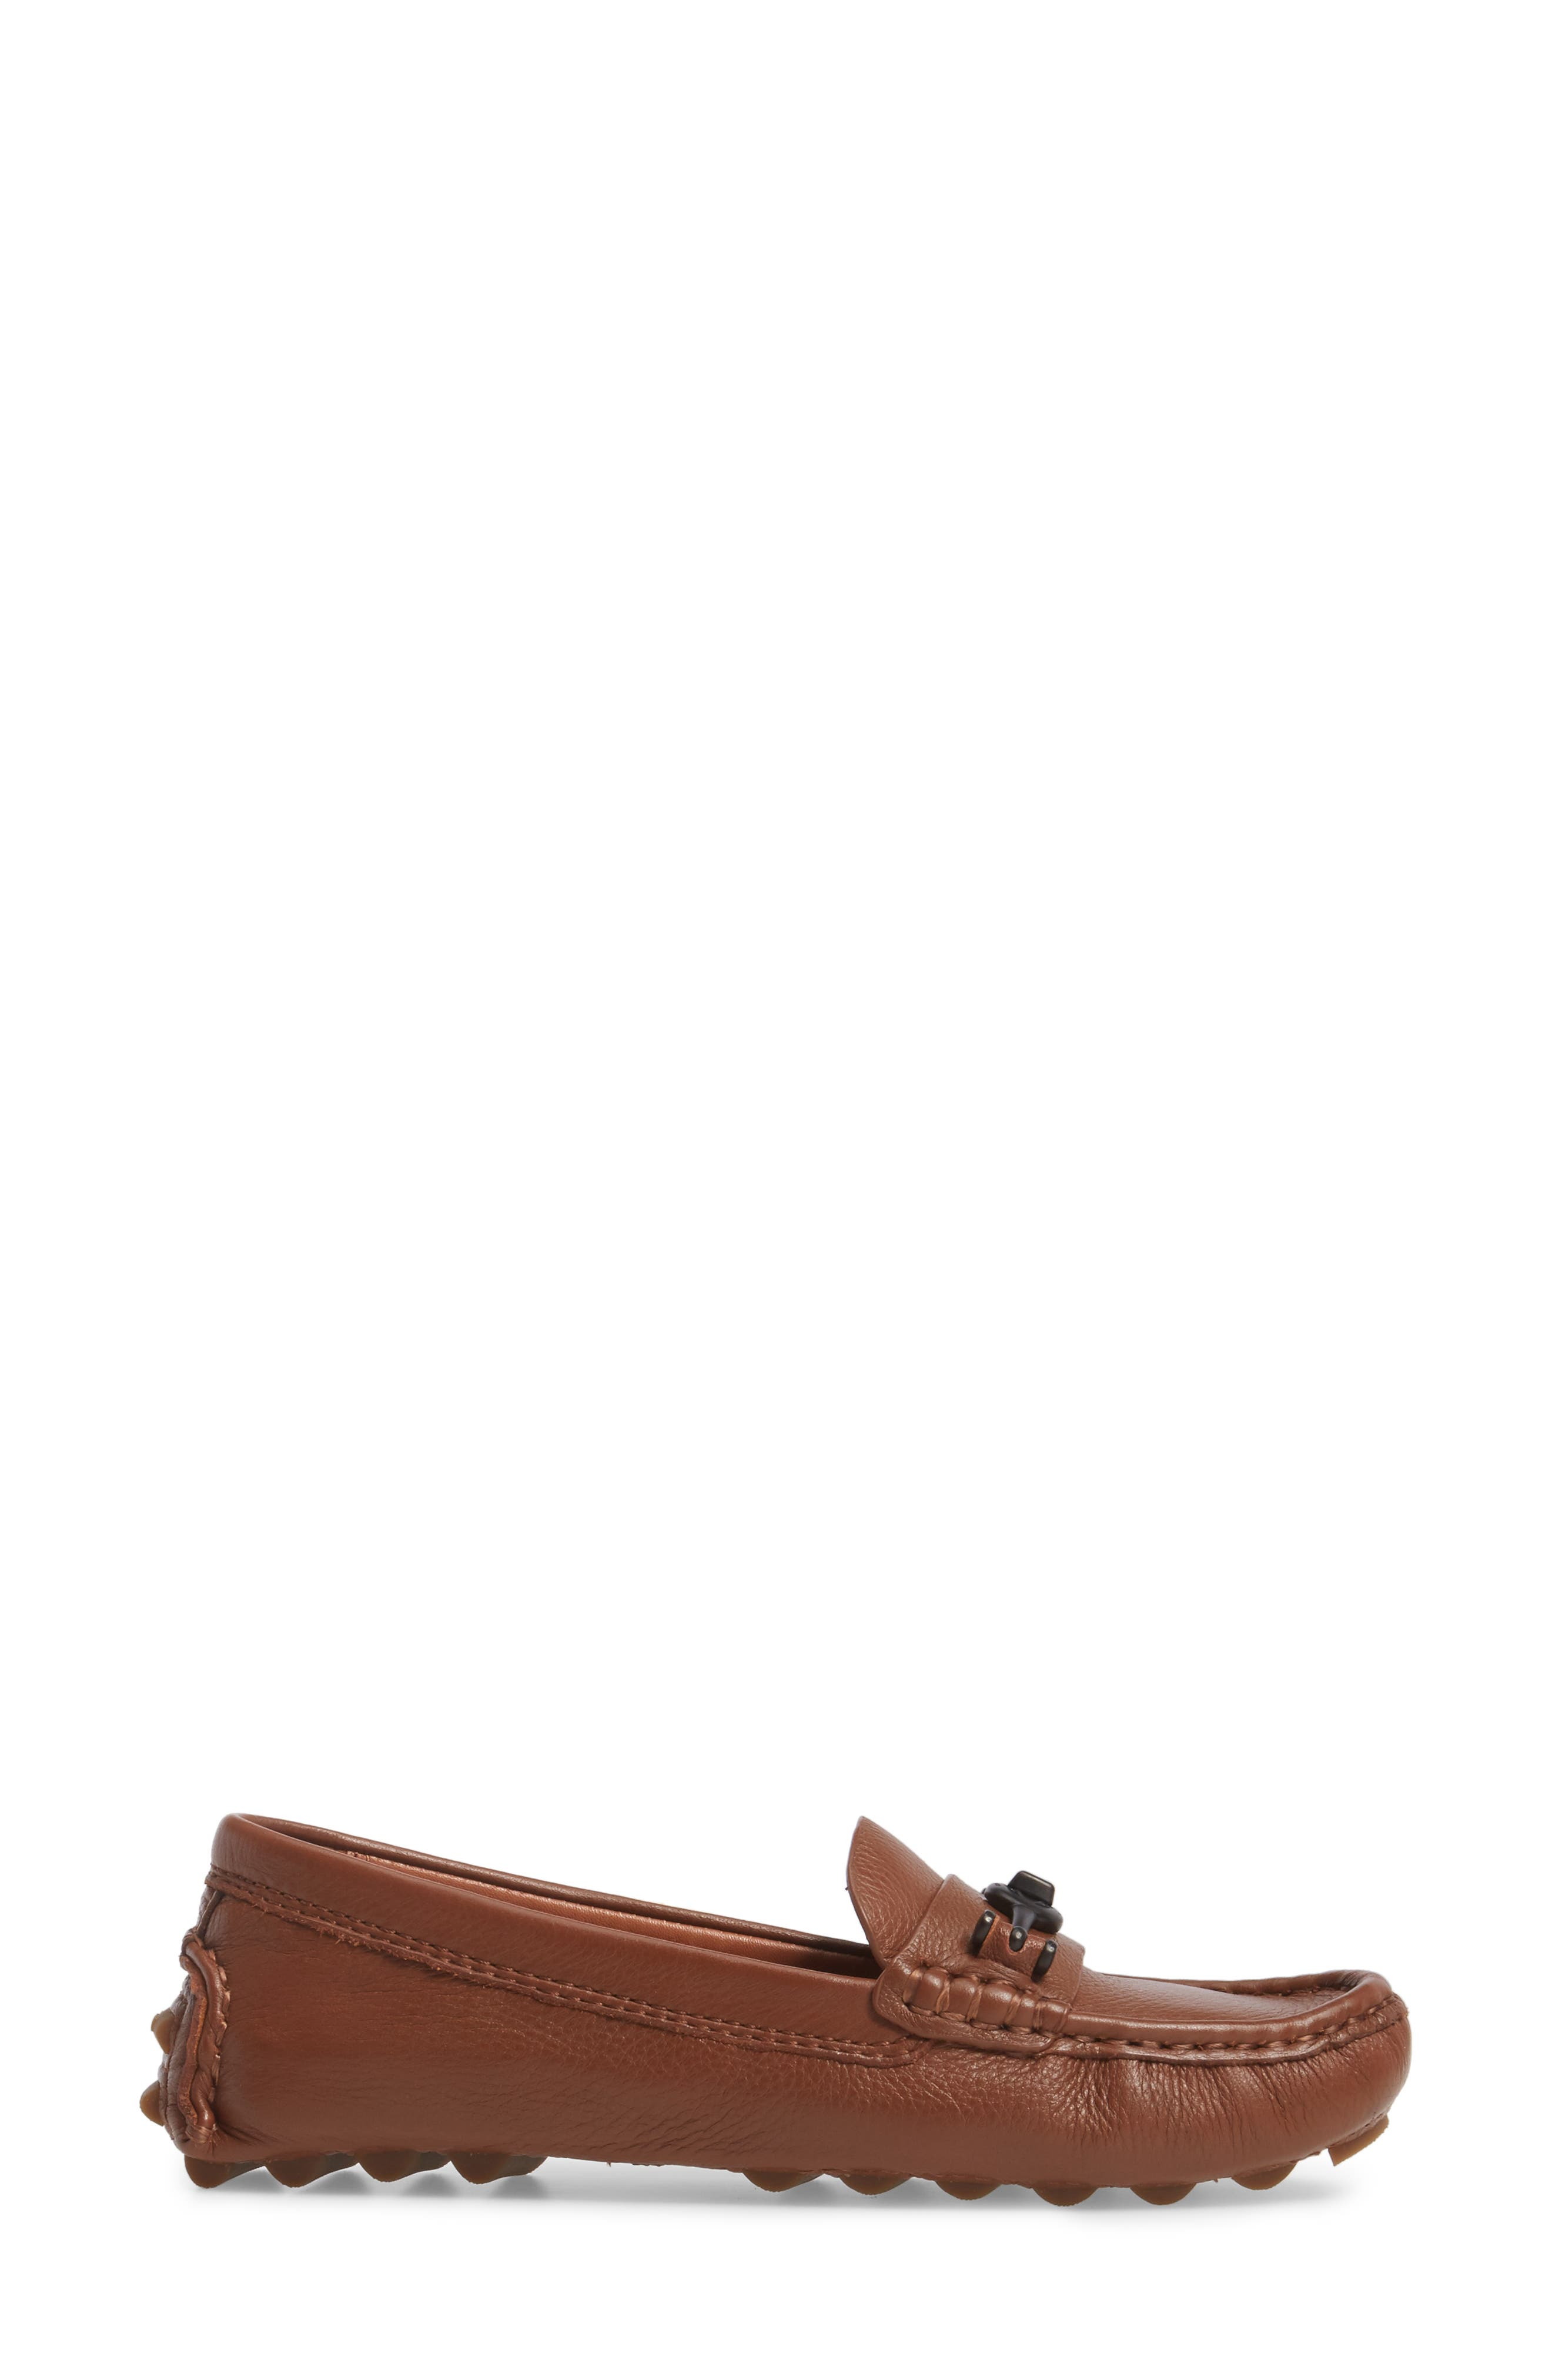 Crosby Driver Loafer,                             Alternate thumbnail 3, color,                             SADDLE LEATHER